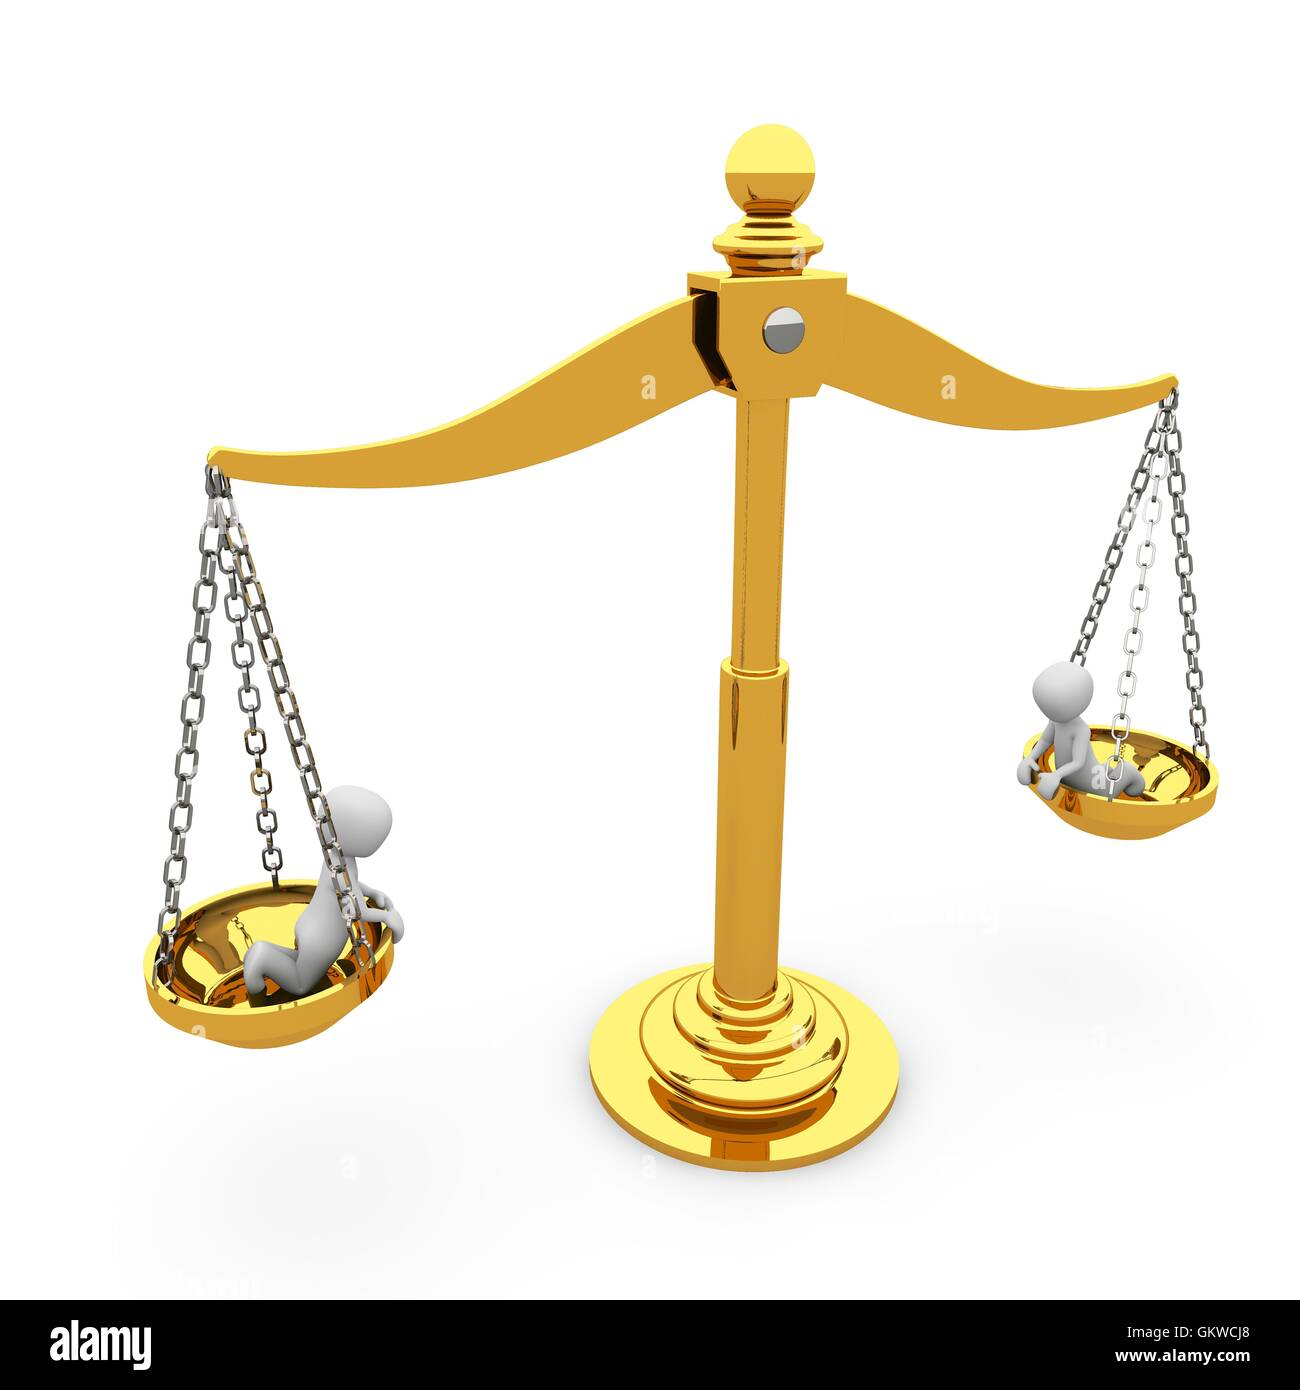 The gold scales of justice - Stock Image